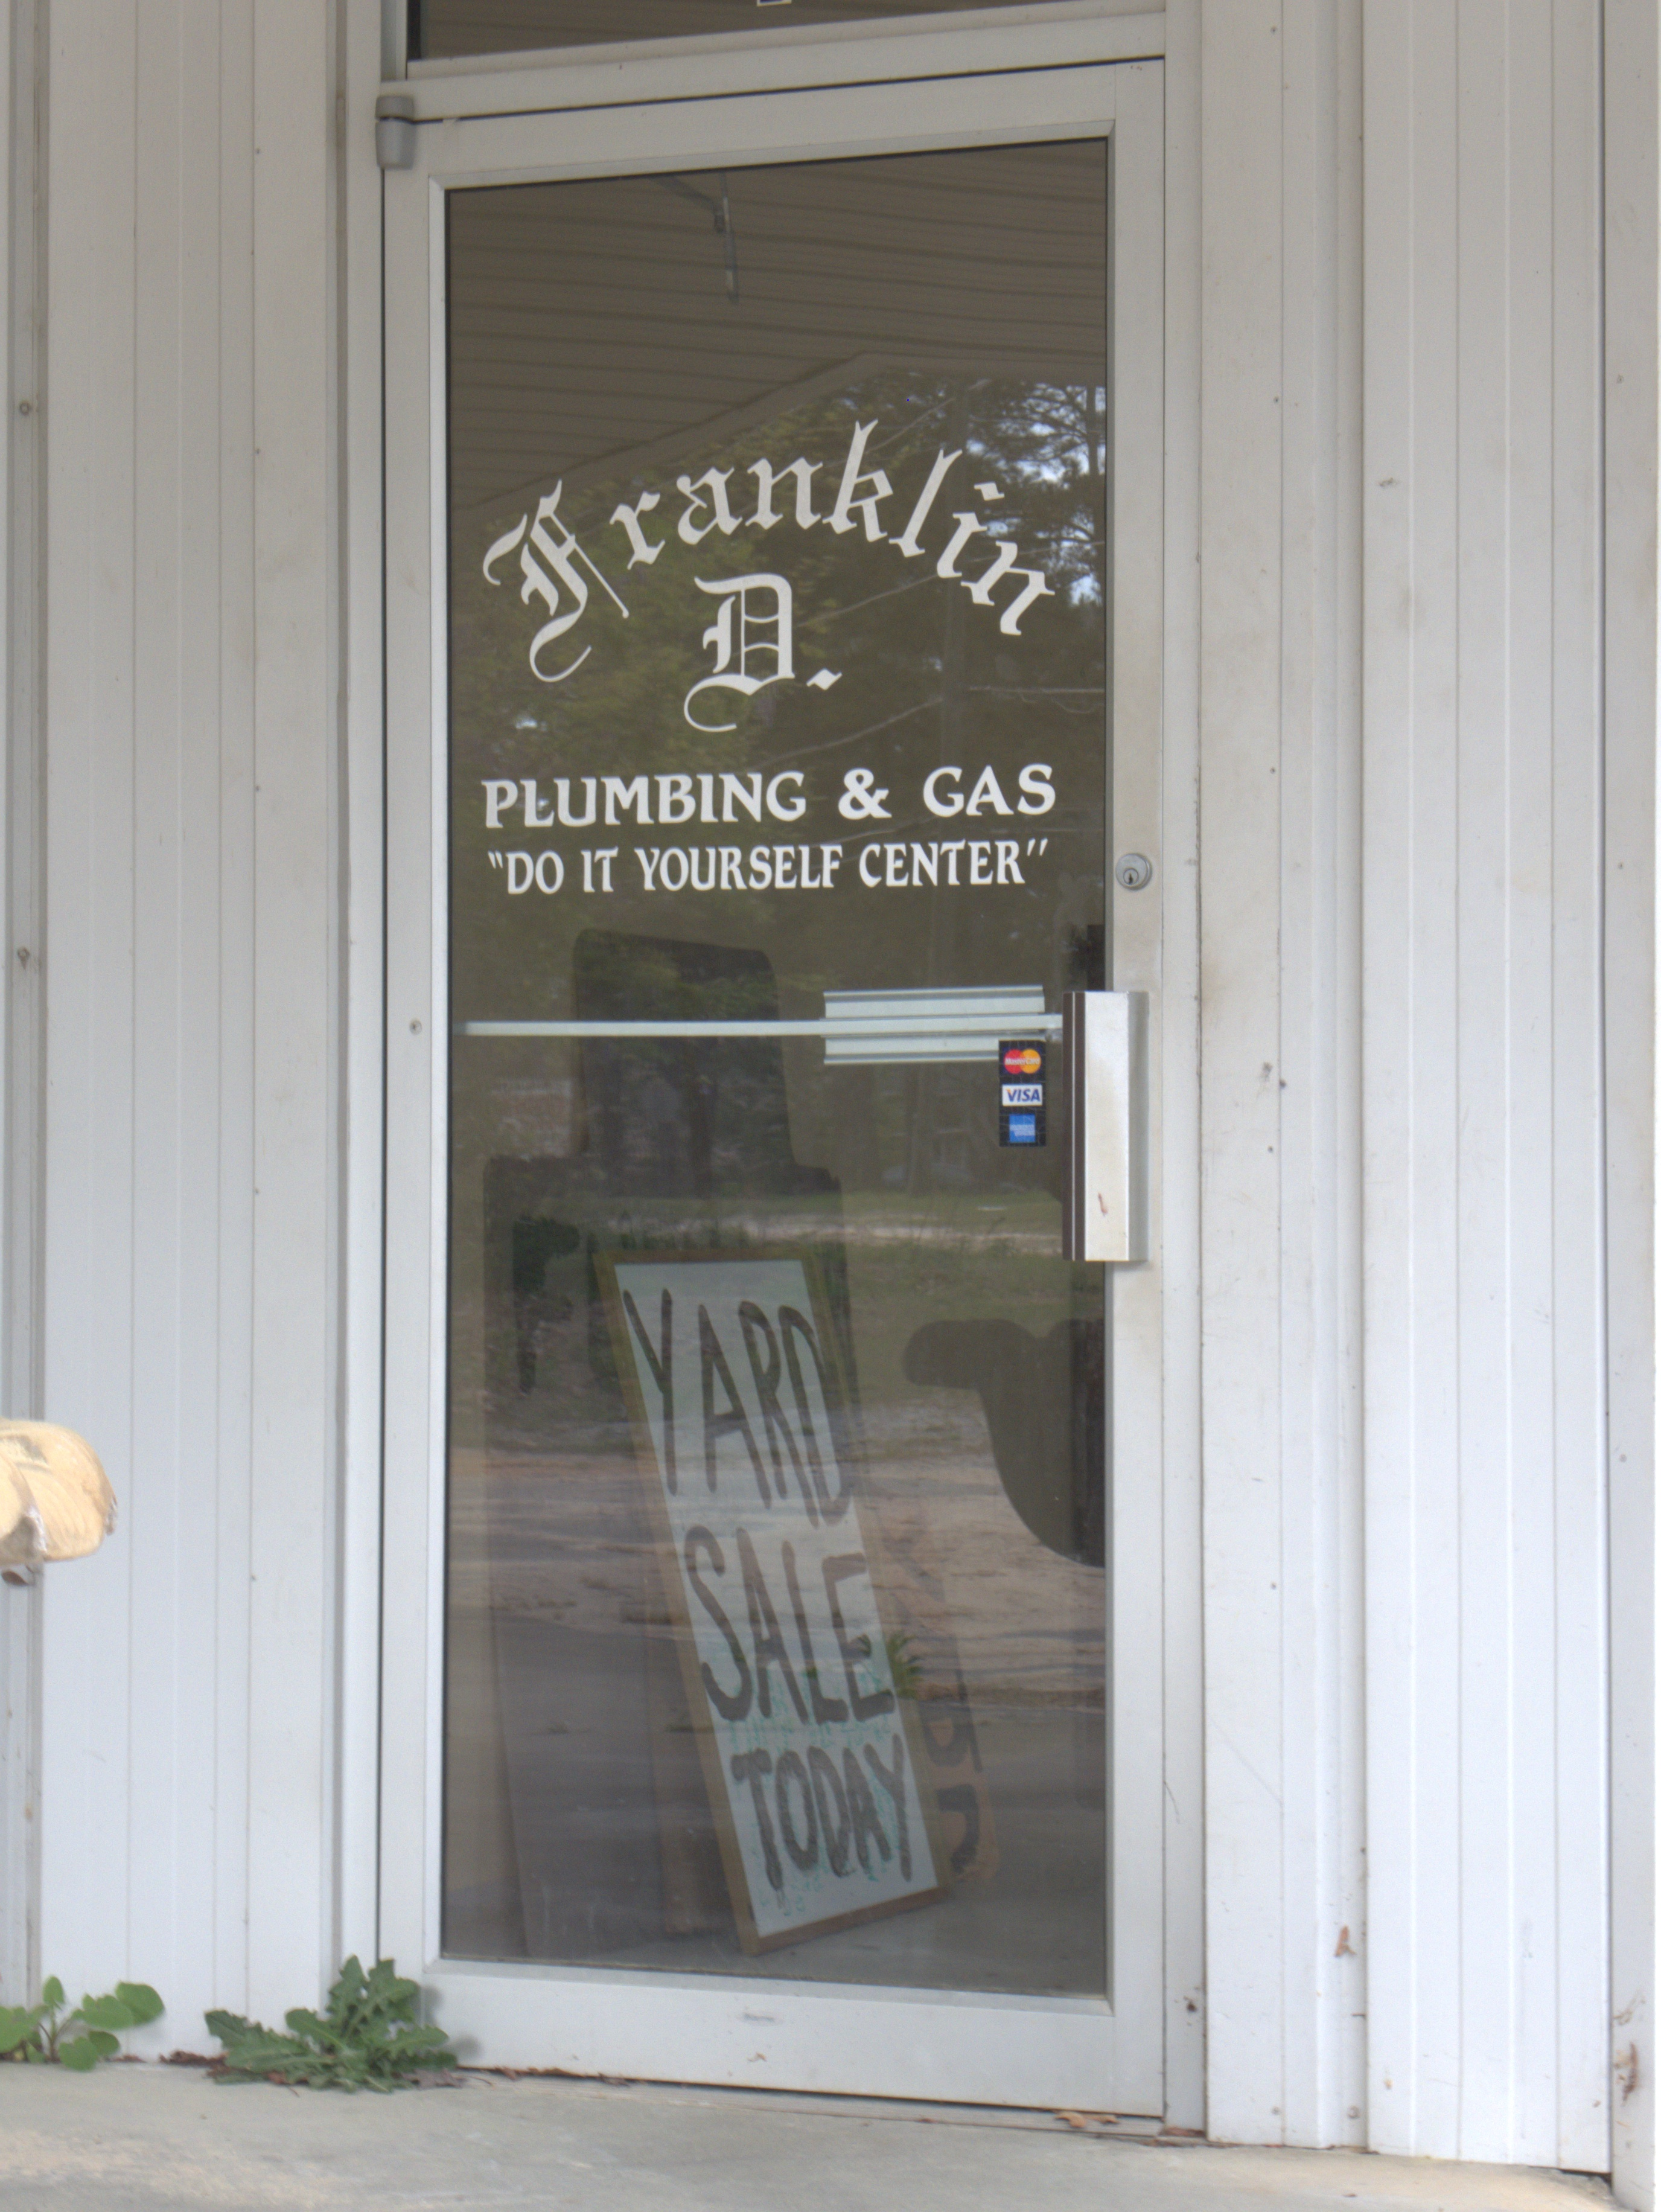 Franklin d plumbing gas co do it yourself center